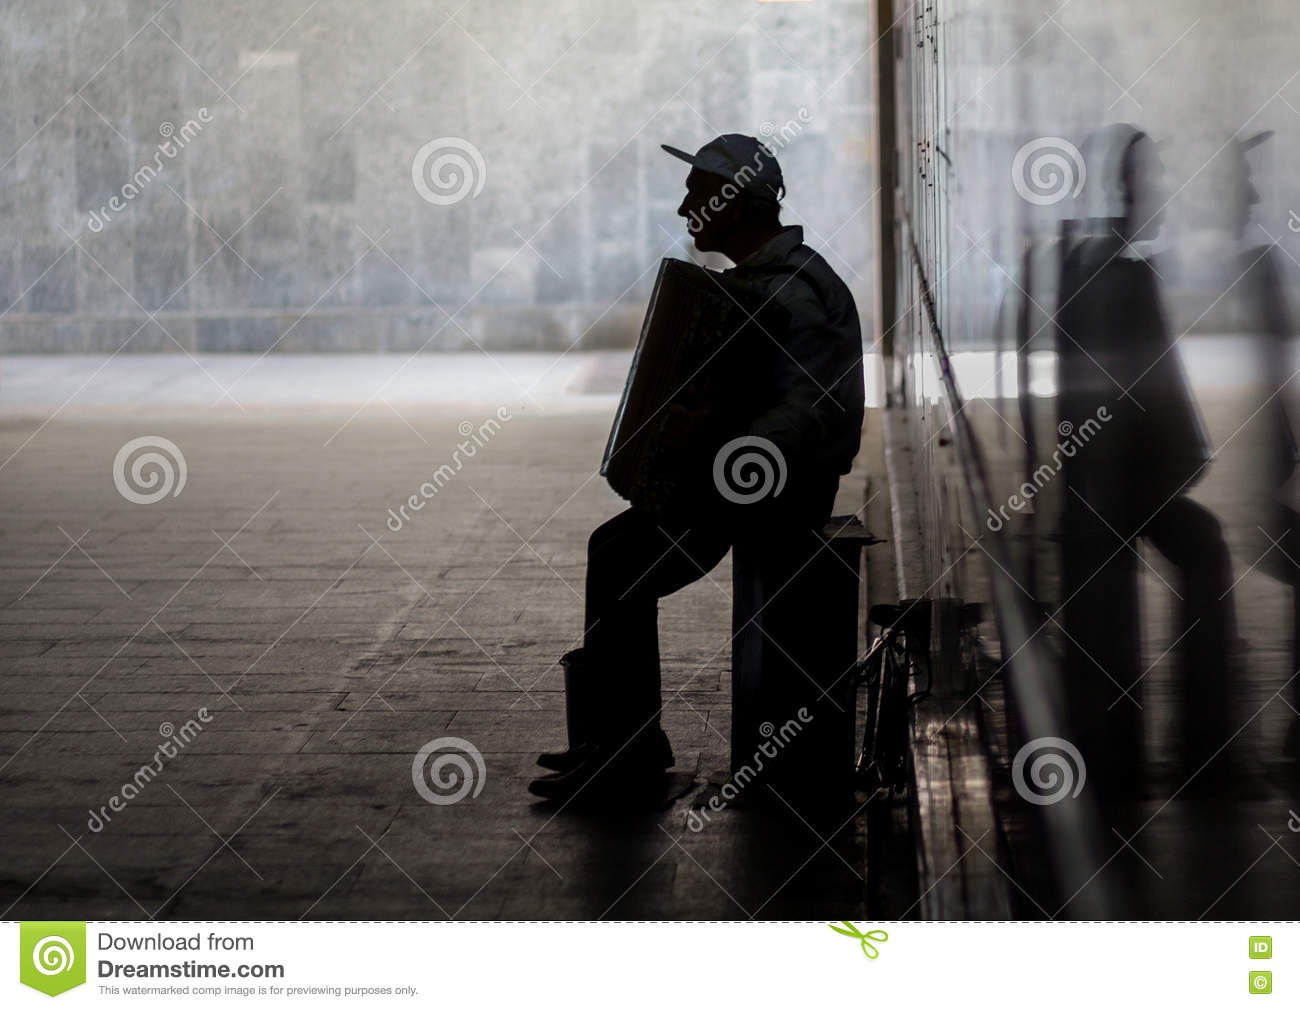 Silhouette Of Musician With Accordion Stock Image - Image ...